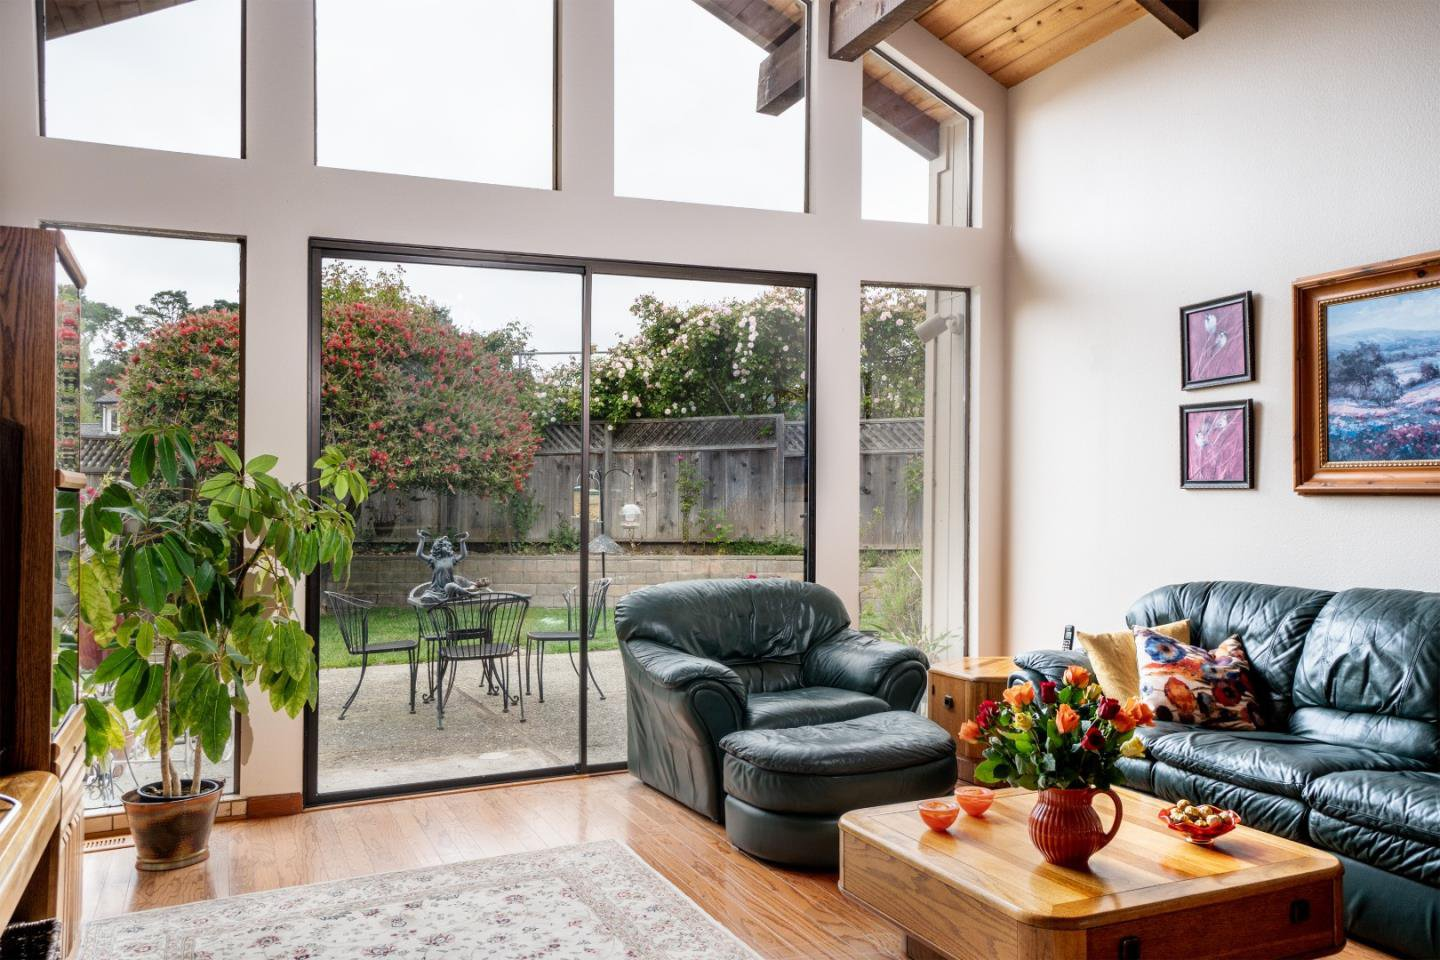 House for sale in monterey california